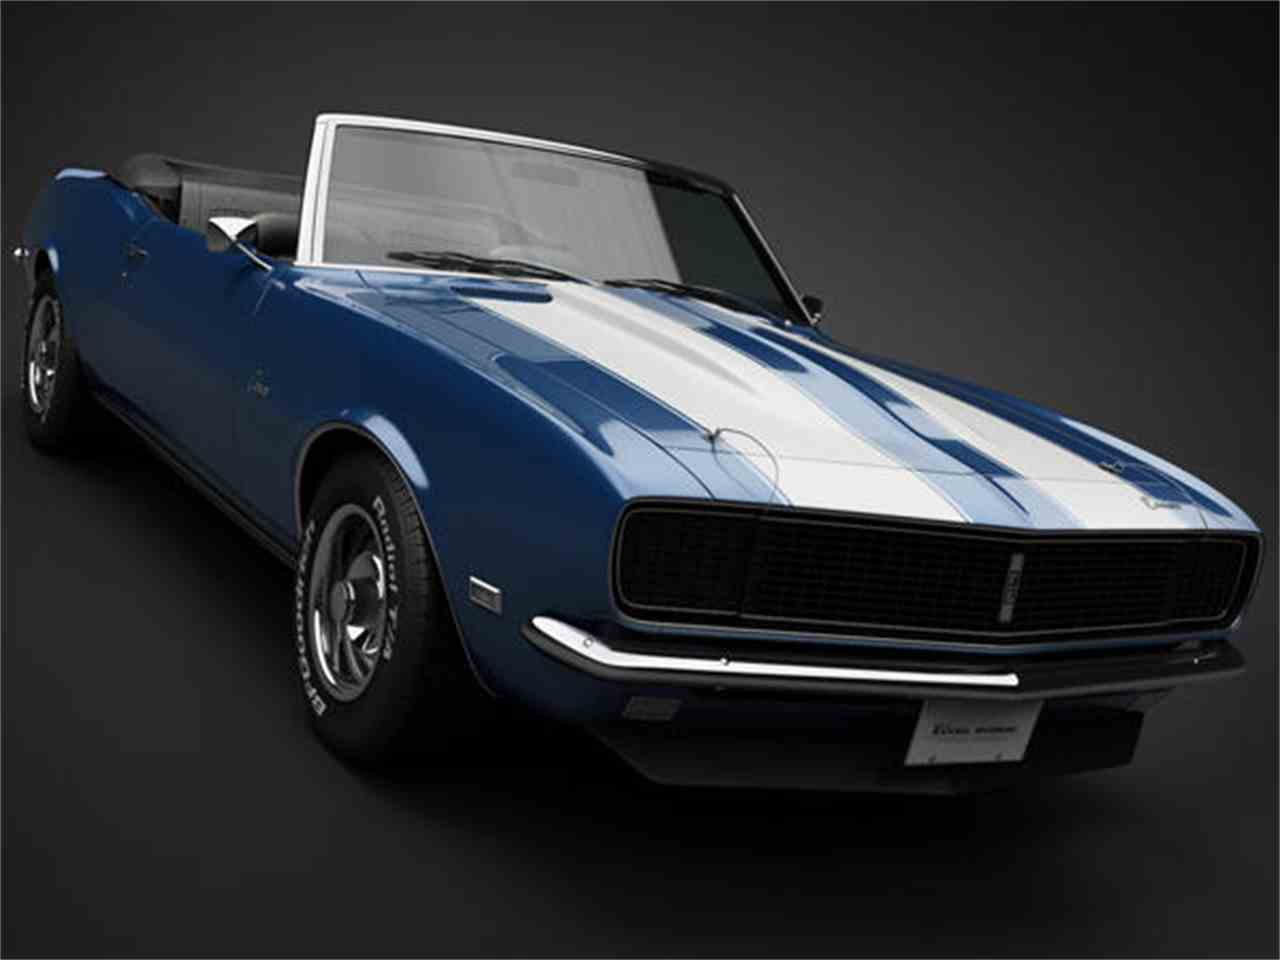 Large Picture of '69 Chevrolet Camaro located in Arizona - $110,000.00 Offered by Desert Classic Mustangs - JQJB